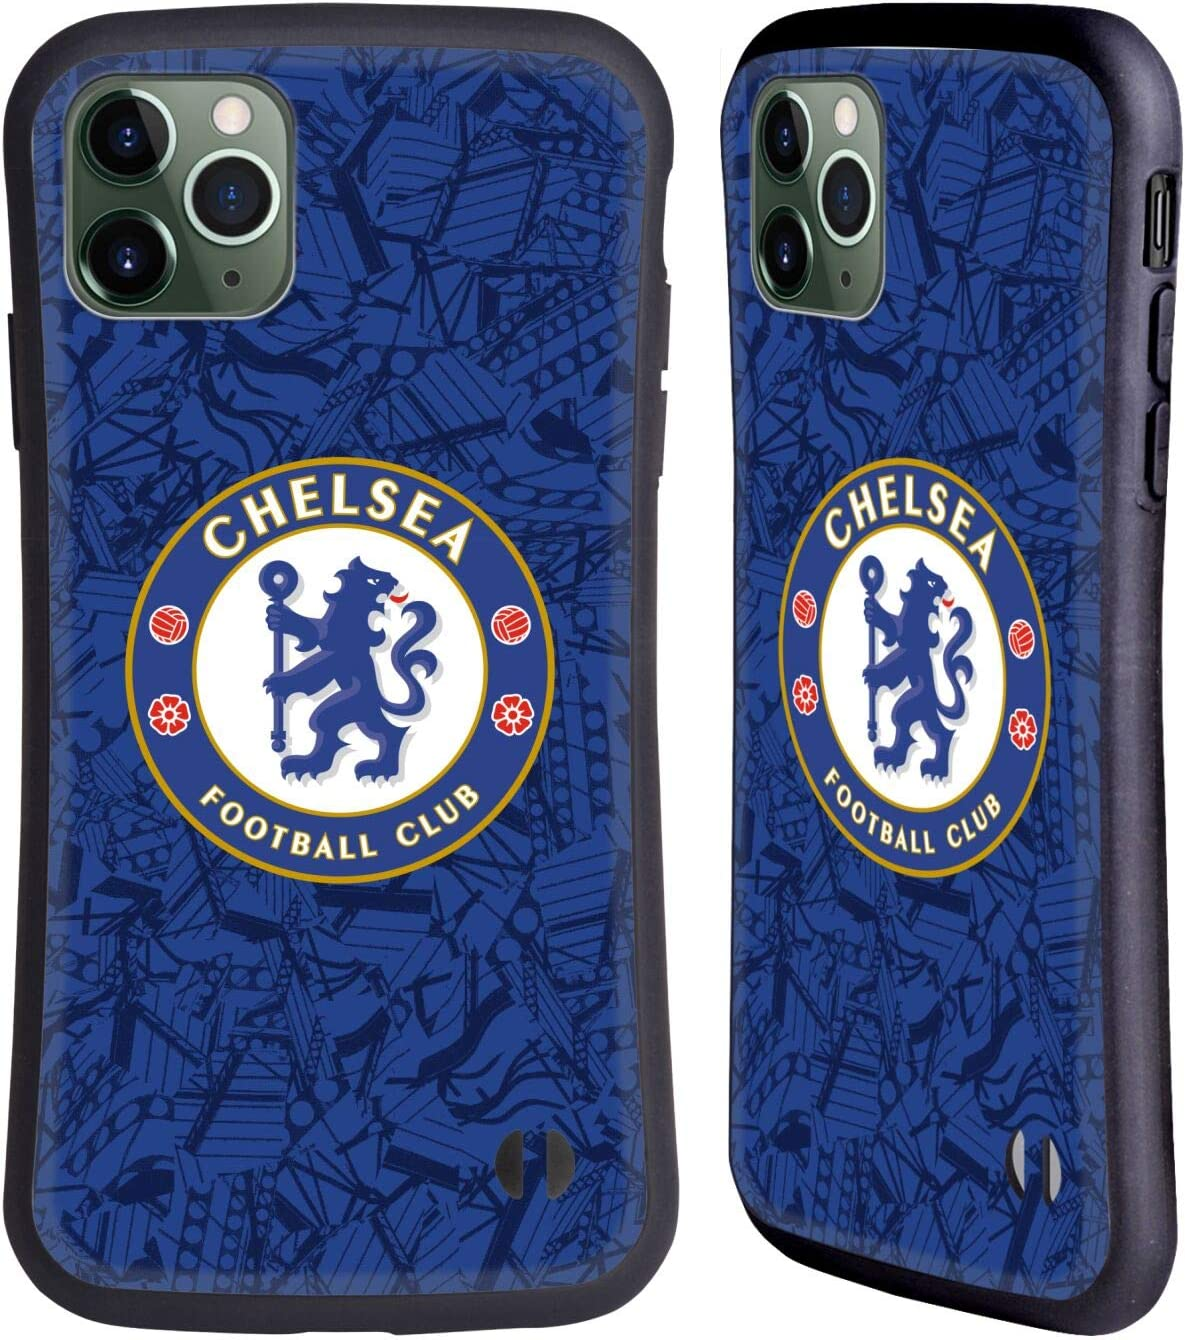 Head Case Designs Officially Licensed Chelsea Football Club Home 2019/20 Kit Hybrid Case Compatible with Apple iPhone 11 Pro Max